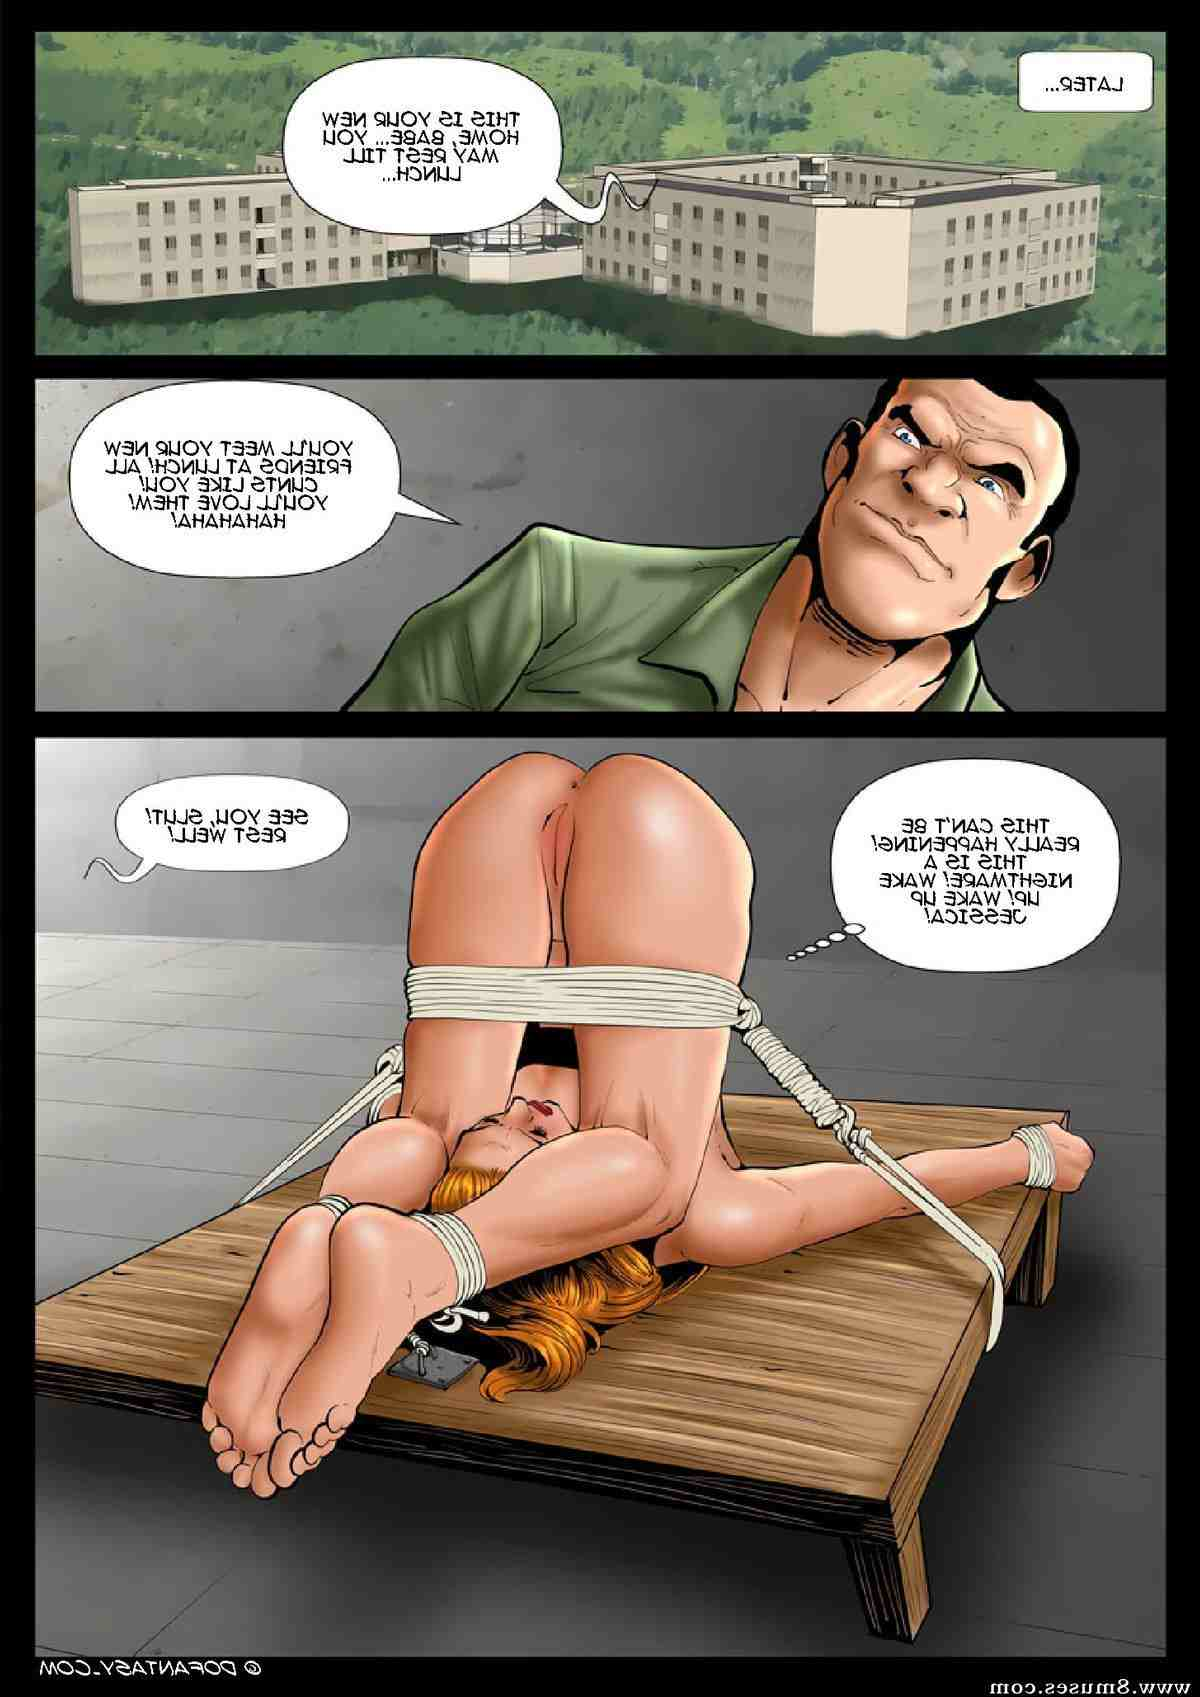 Fansadox-Comics/401-500/Fansadox-413-A-Bold-Officer-Cagri Fansadox_413_-_A_Bold_Officer_-_Cagri__8muses_-_Sex_and_Porn_Comics_12.jpg